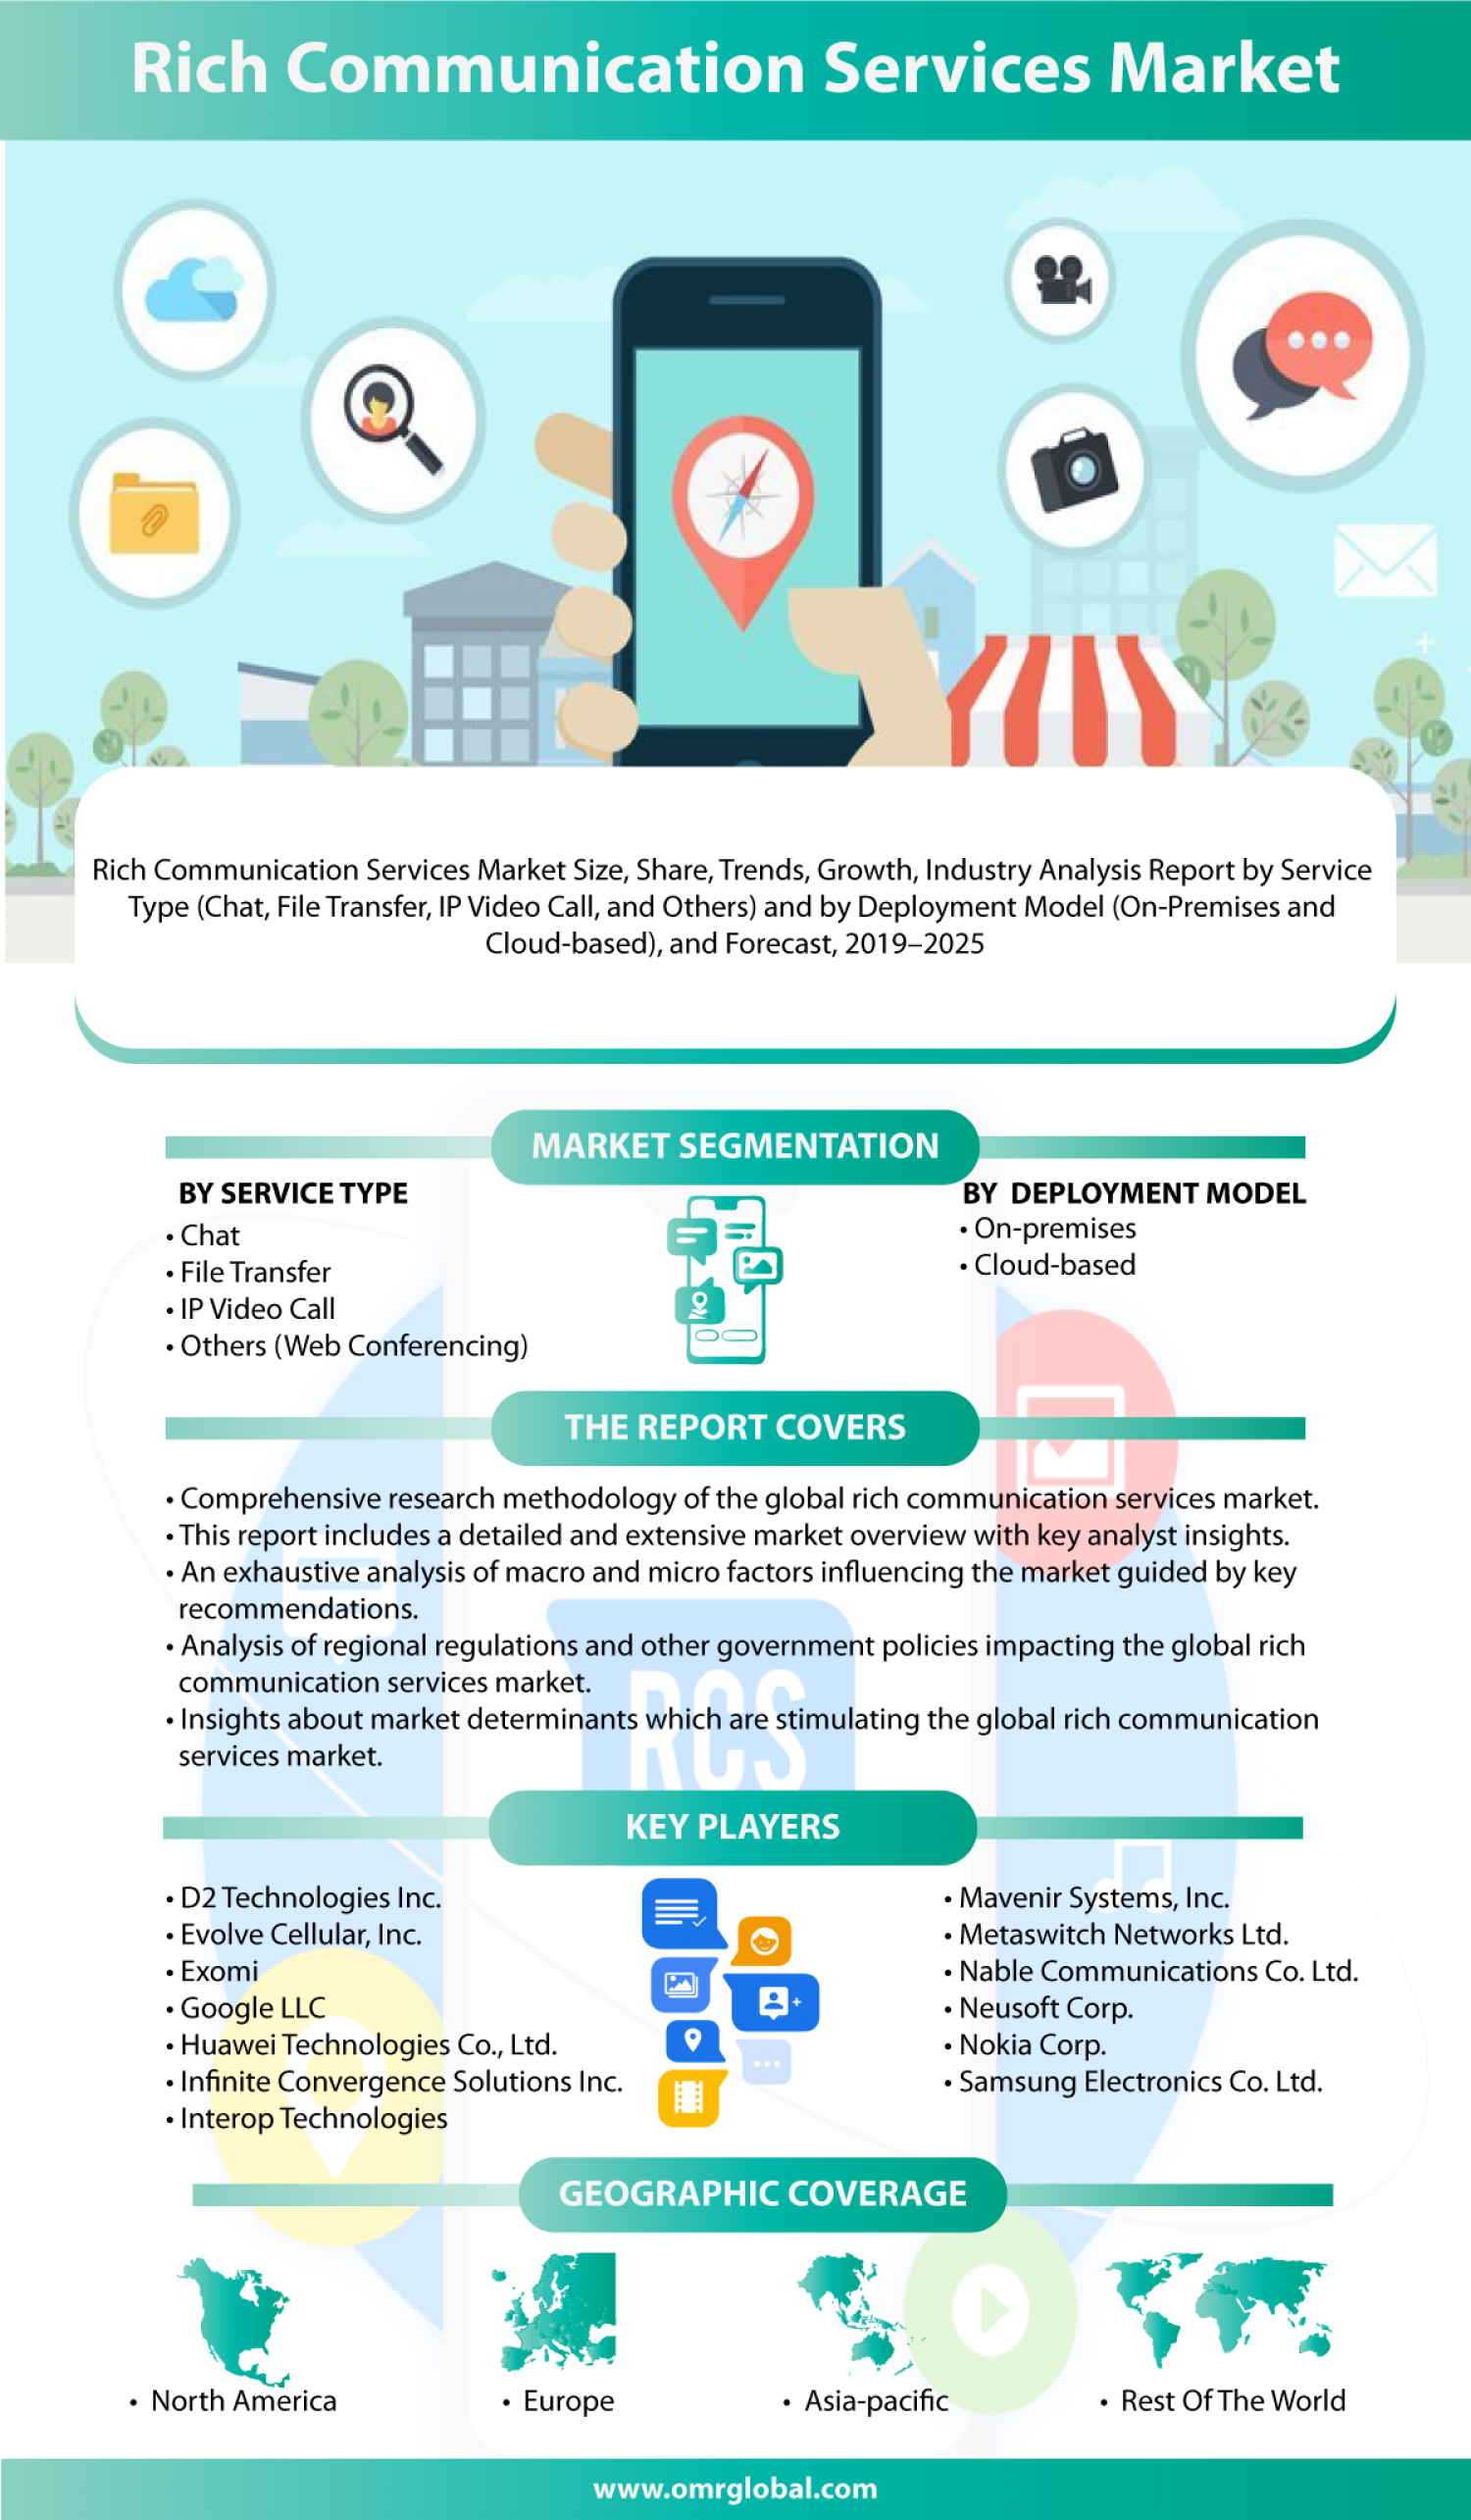 Rich Communication Services Market Segmentation, Forecast, Market Analysis, Global Industry Size and Share to 2025 Infographic